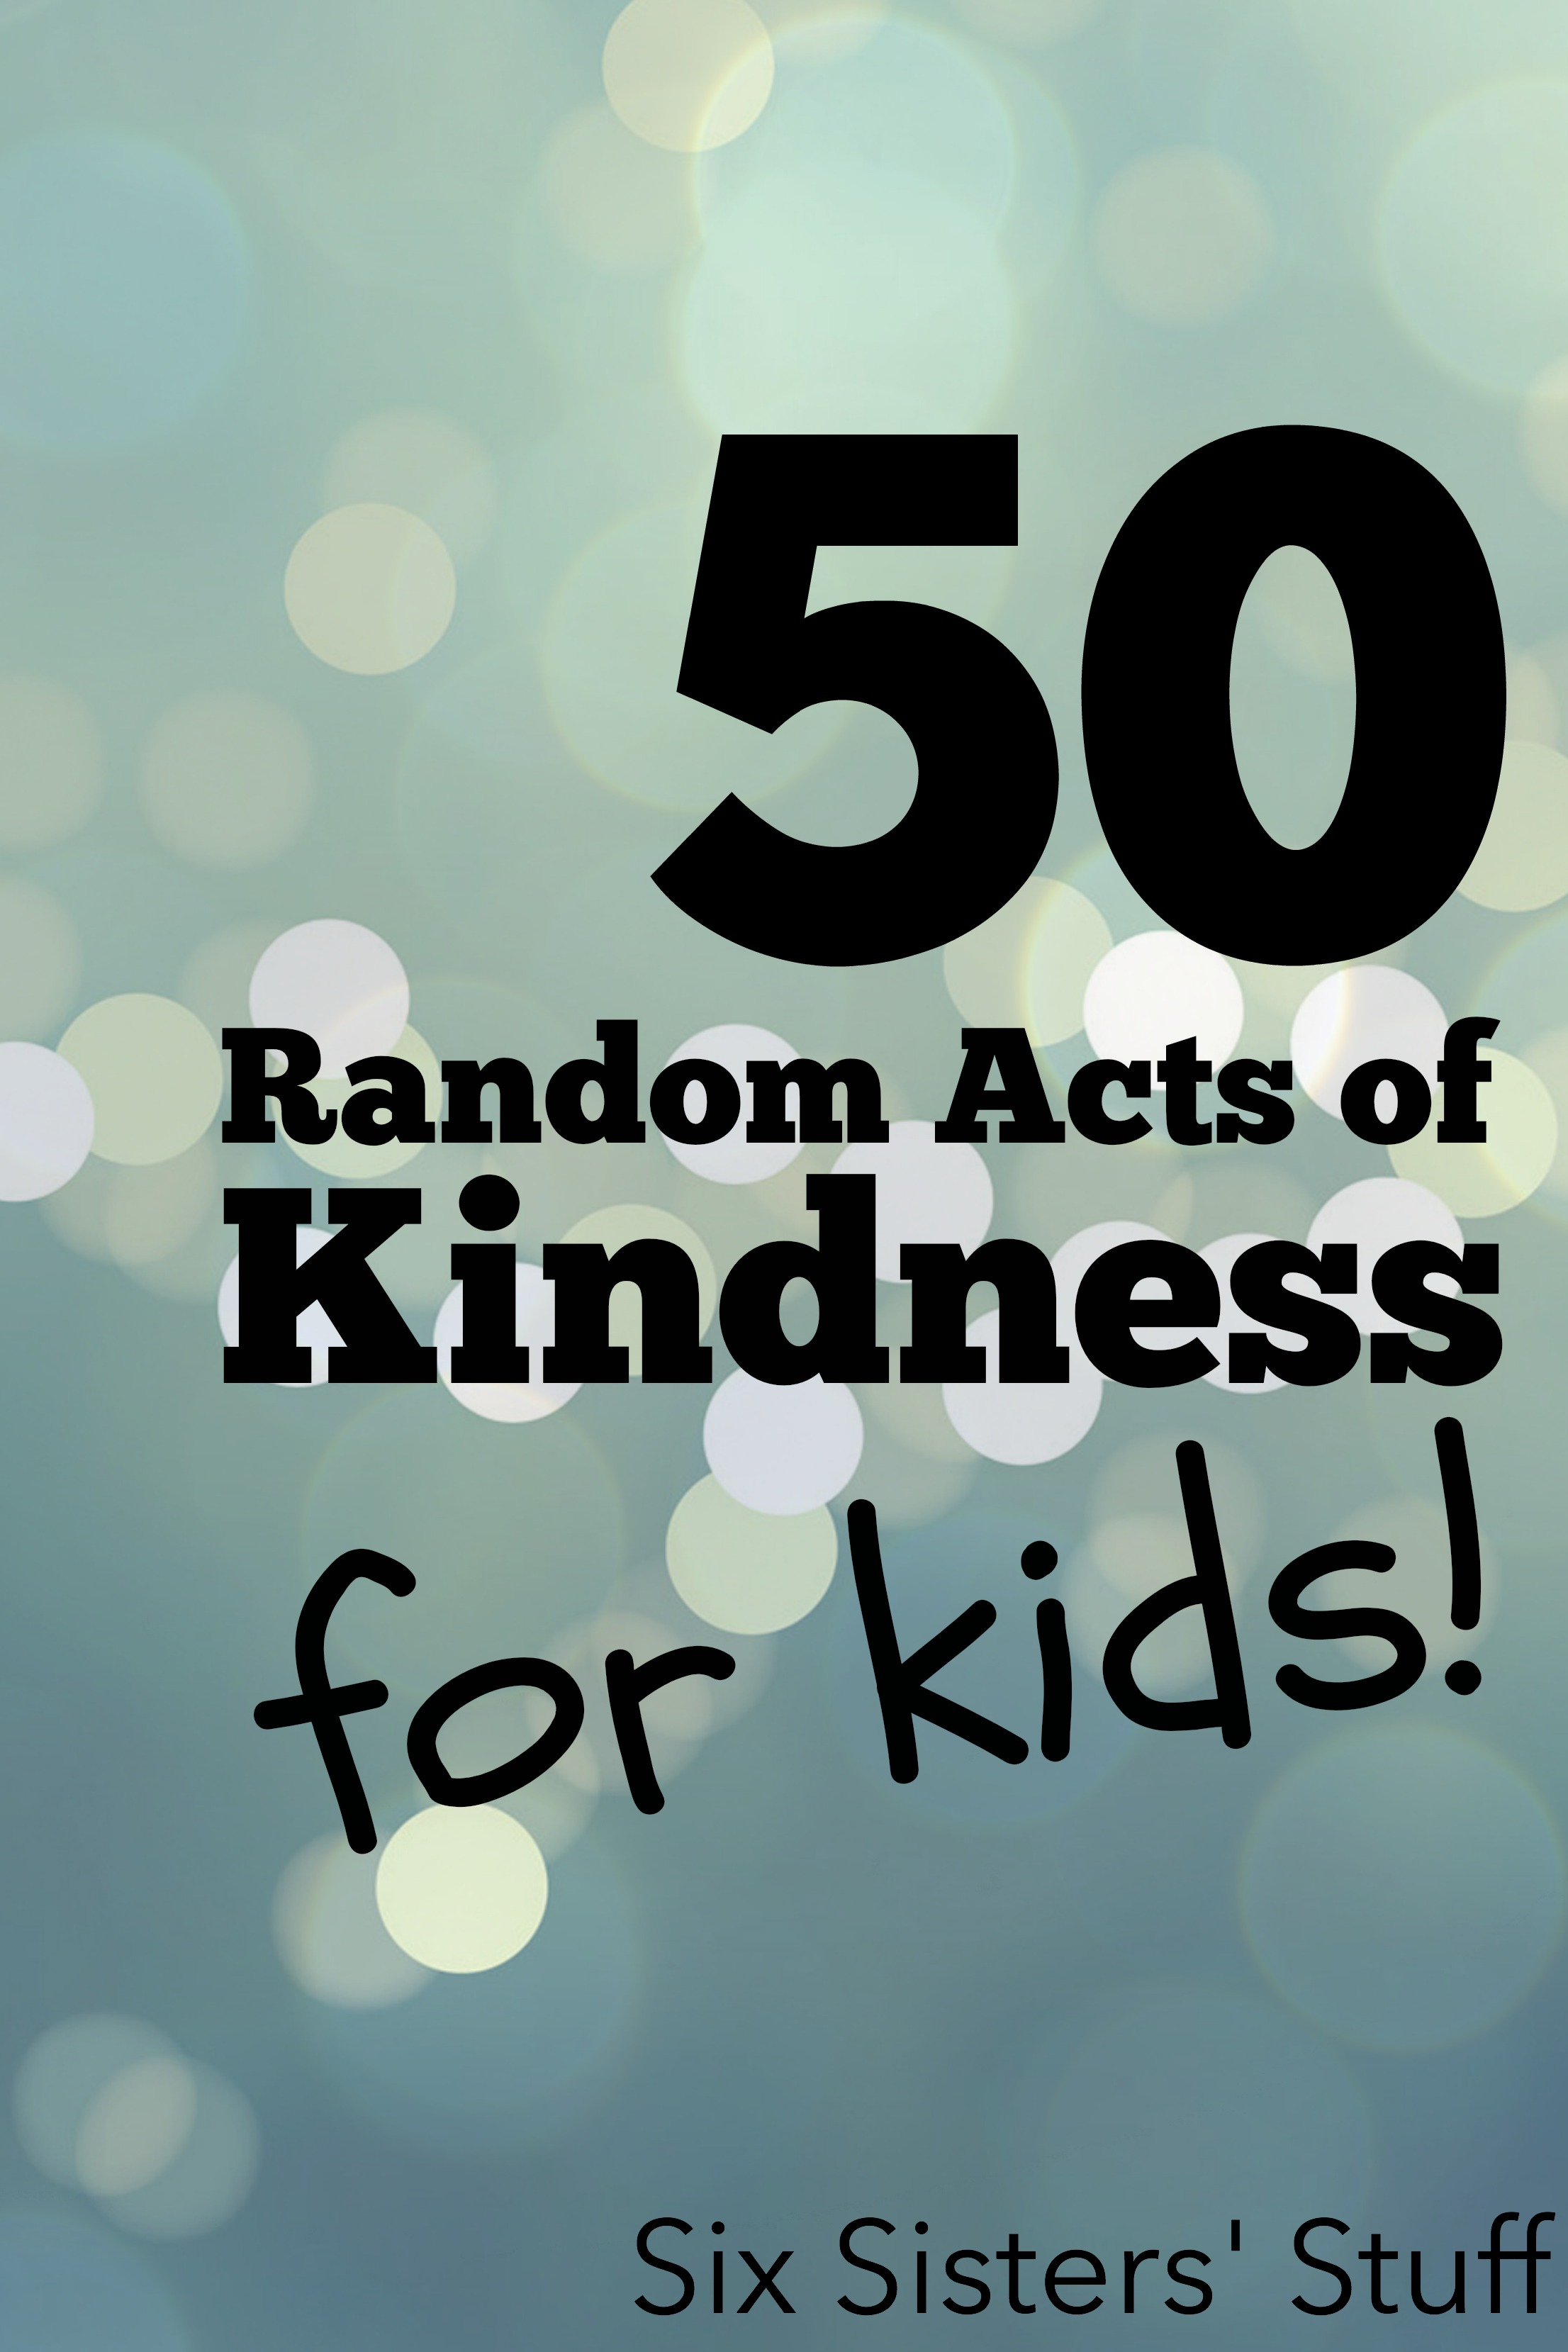 50 Random Acts of Kindness for Kids on SixSistersStuff